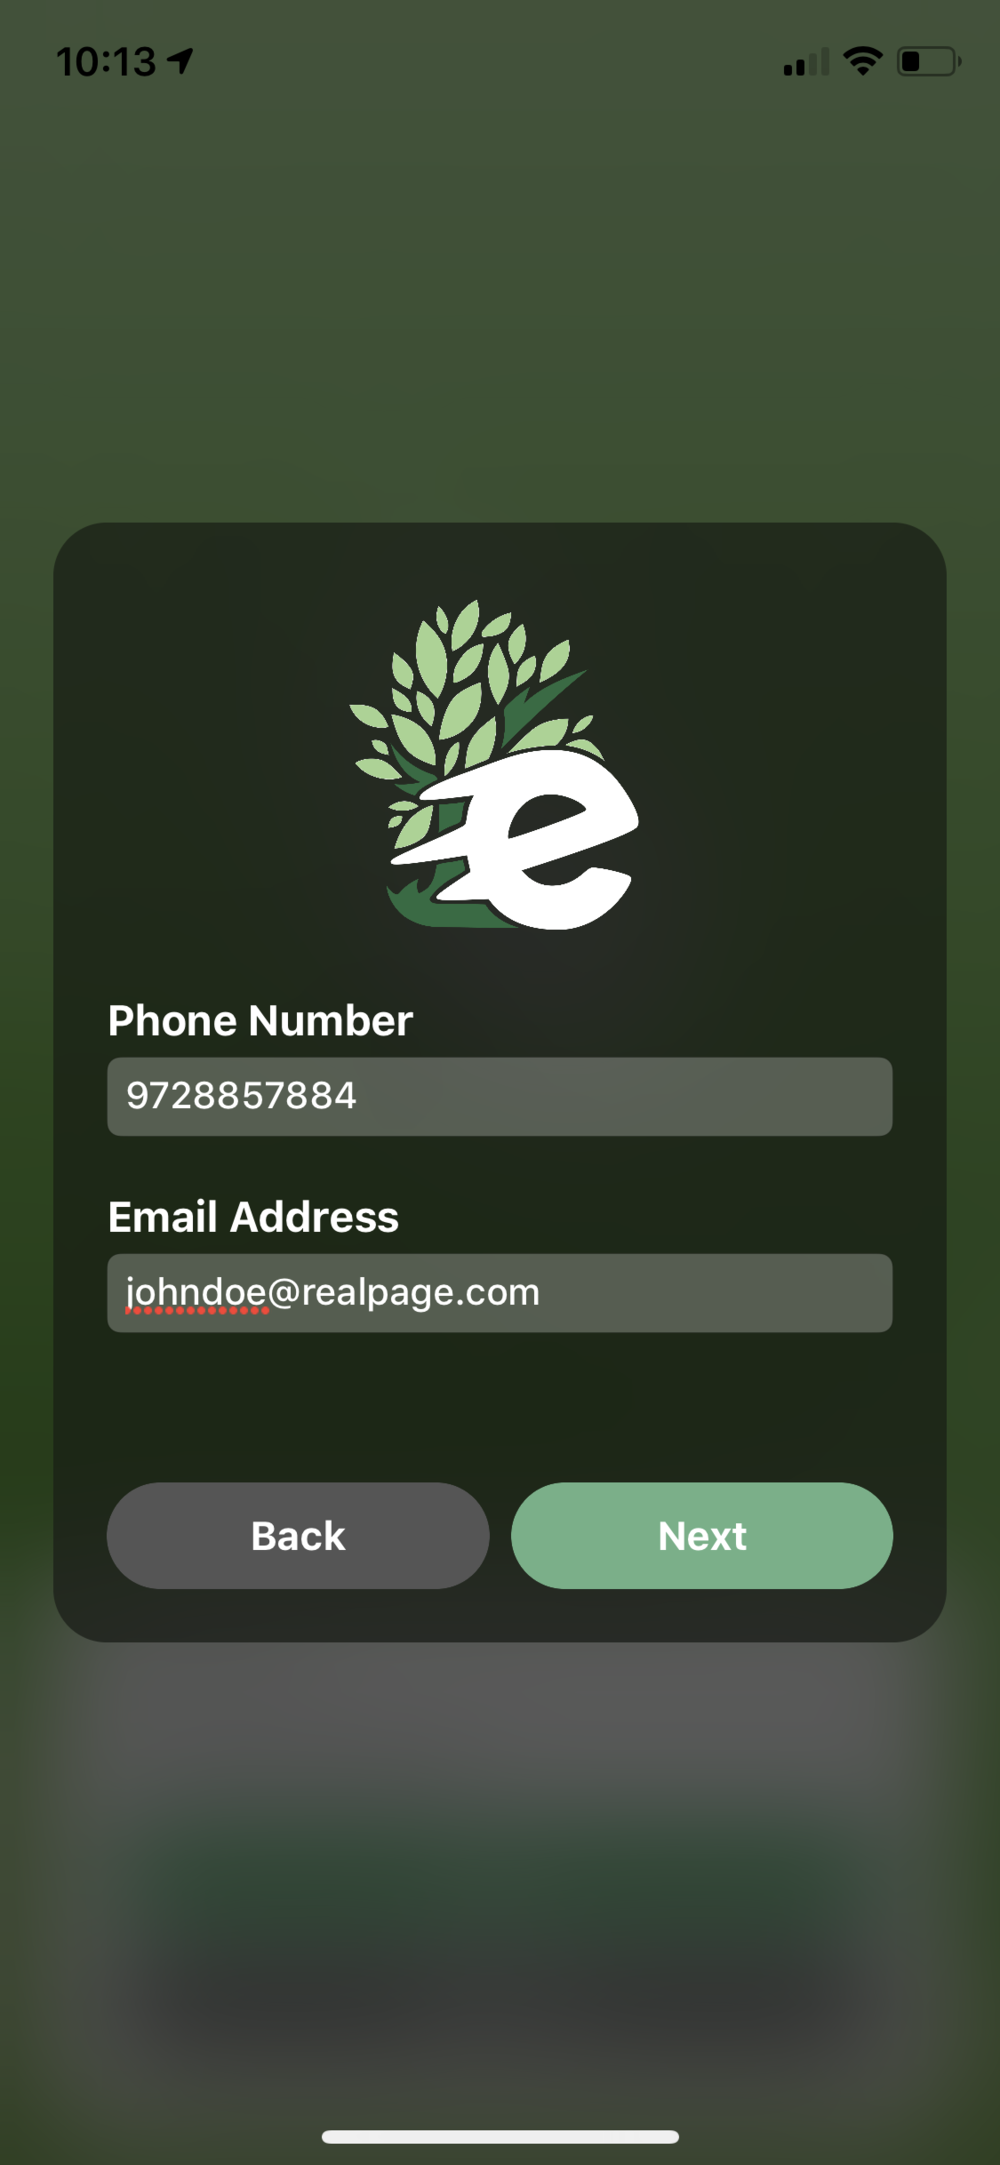 enter a phone number and email you can be reached before each trip, we will connect with you with our in app messaging!